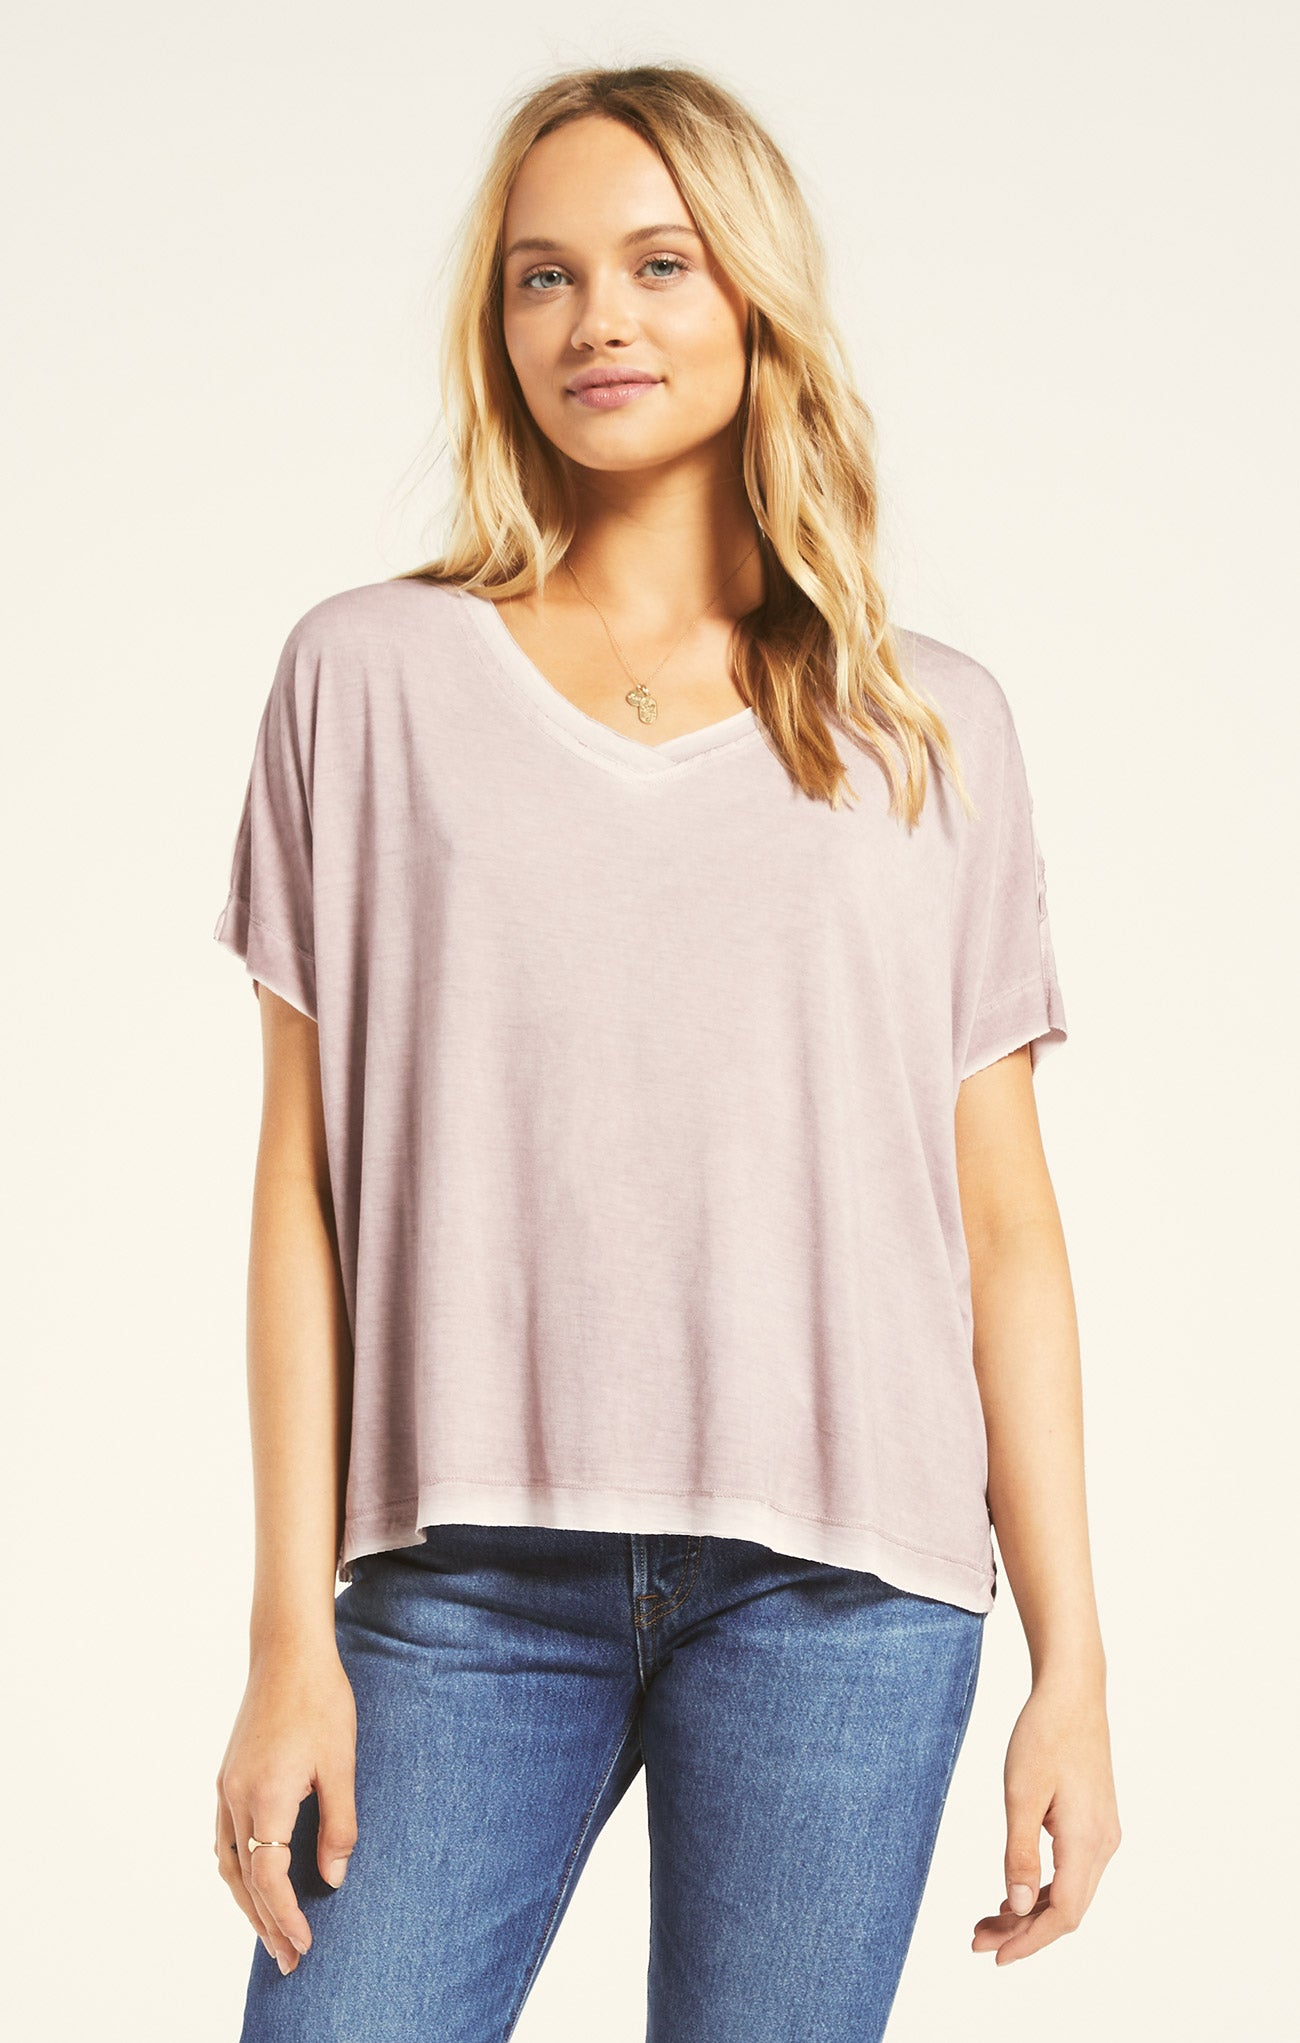 Tops Mischa Sleek V-Neck Tee Amethyst